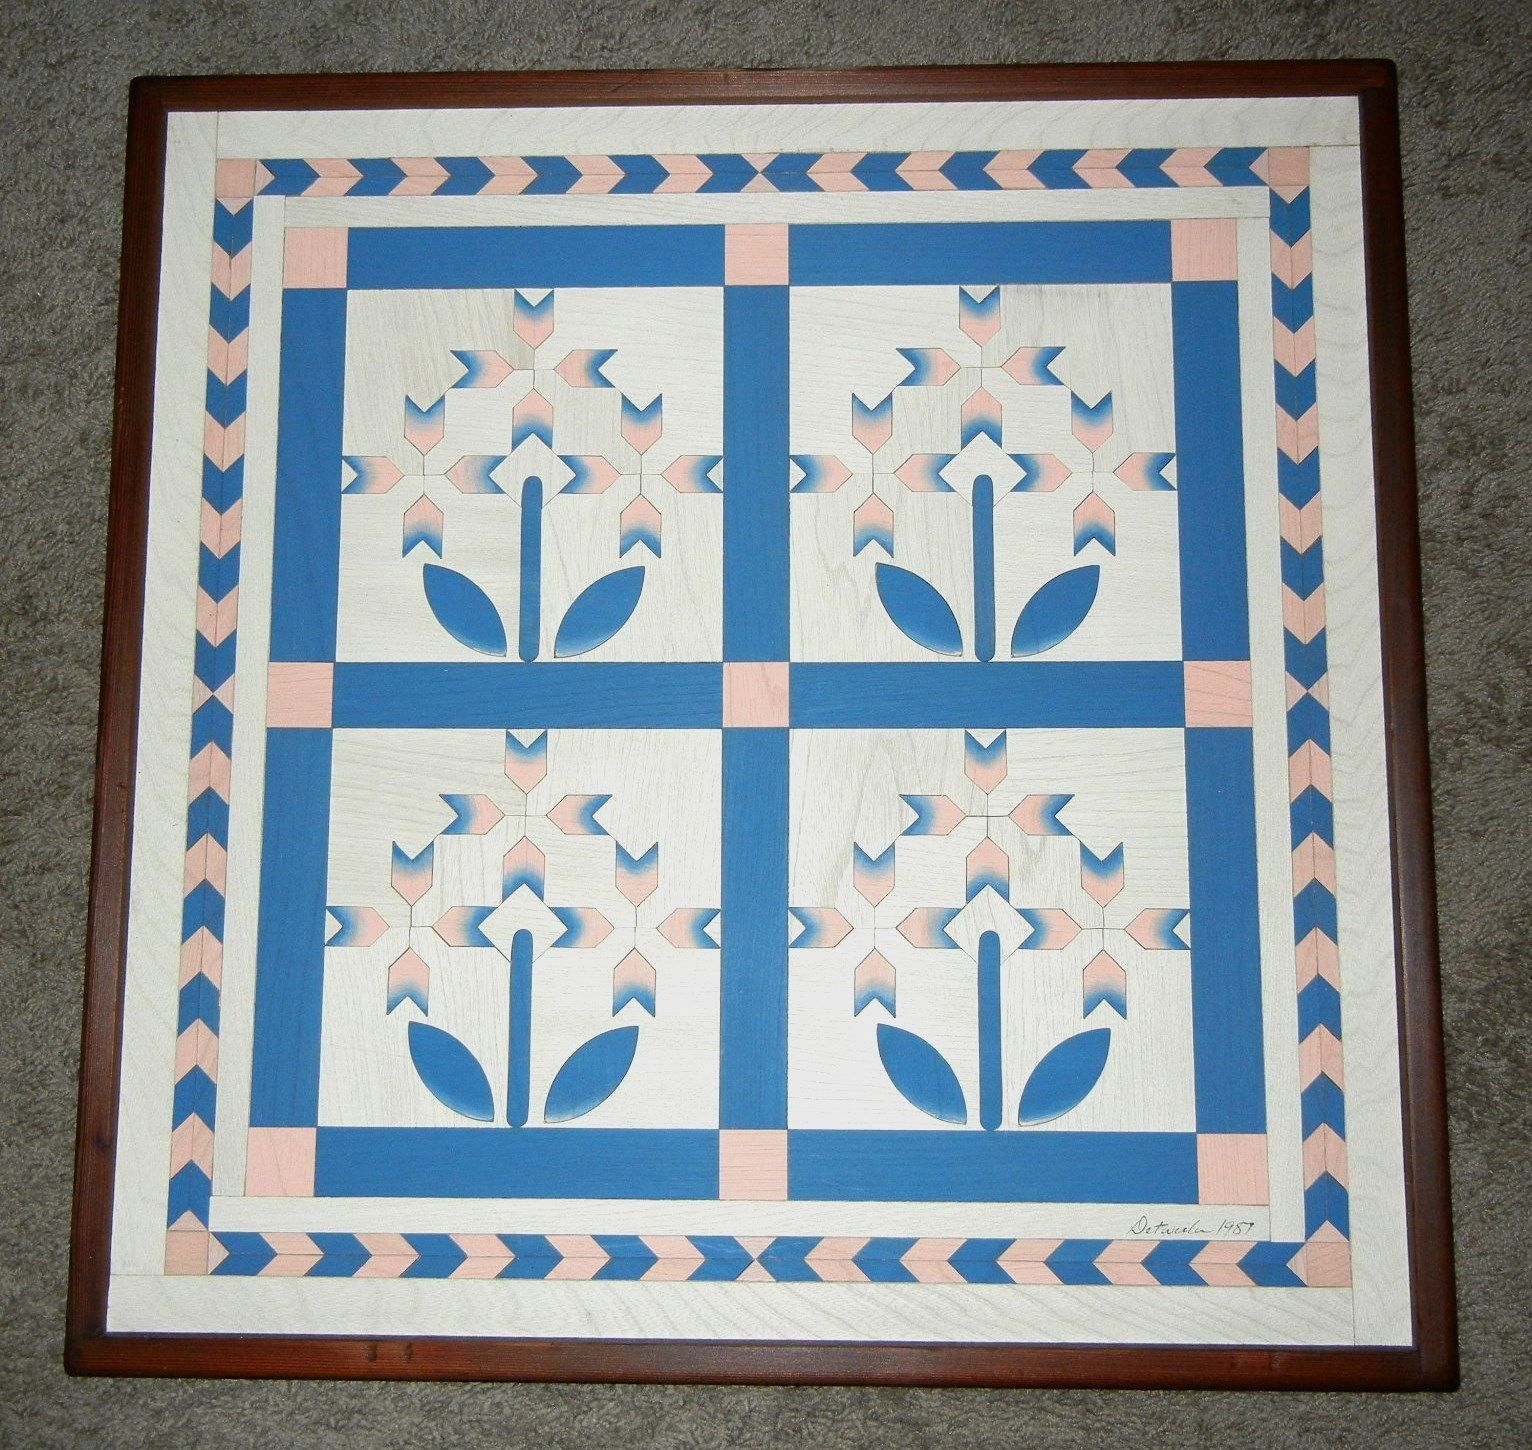 Wood Quilts By Detweiler Inlaid Country Flowers Quilt Wall